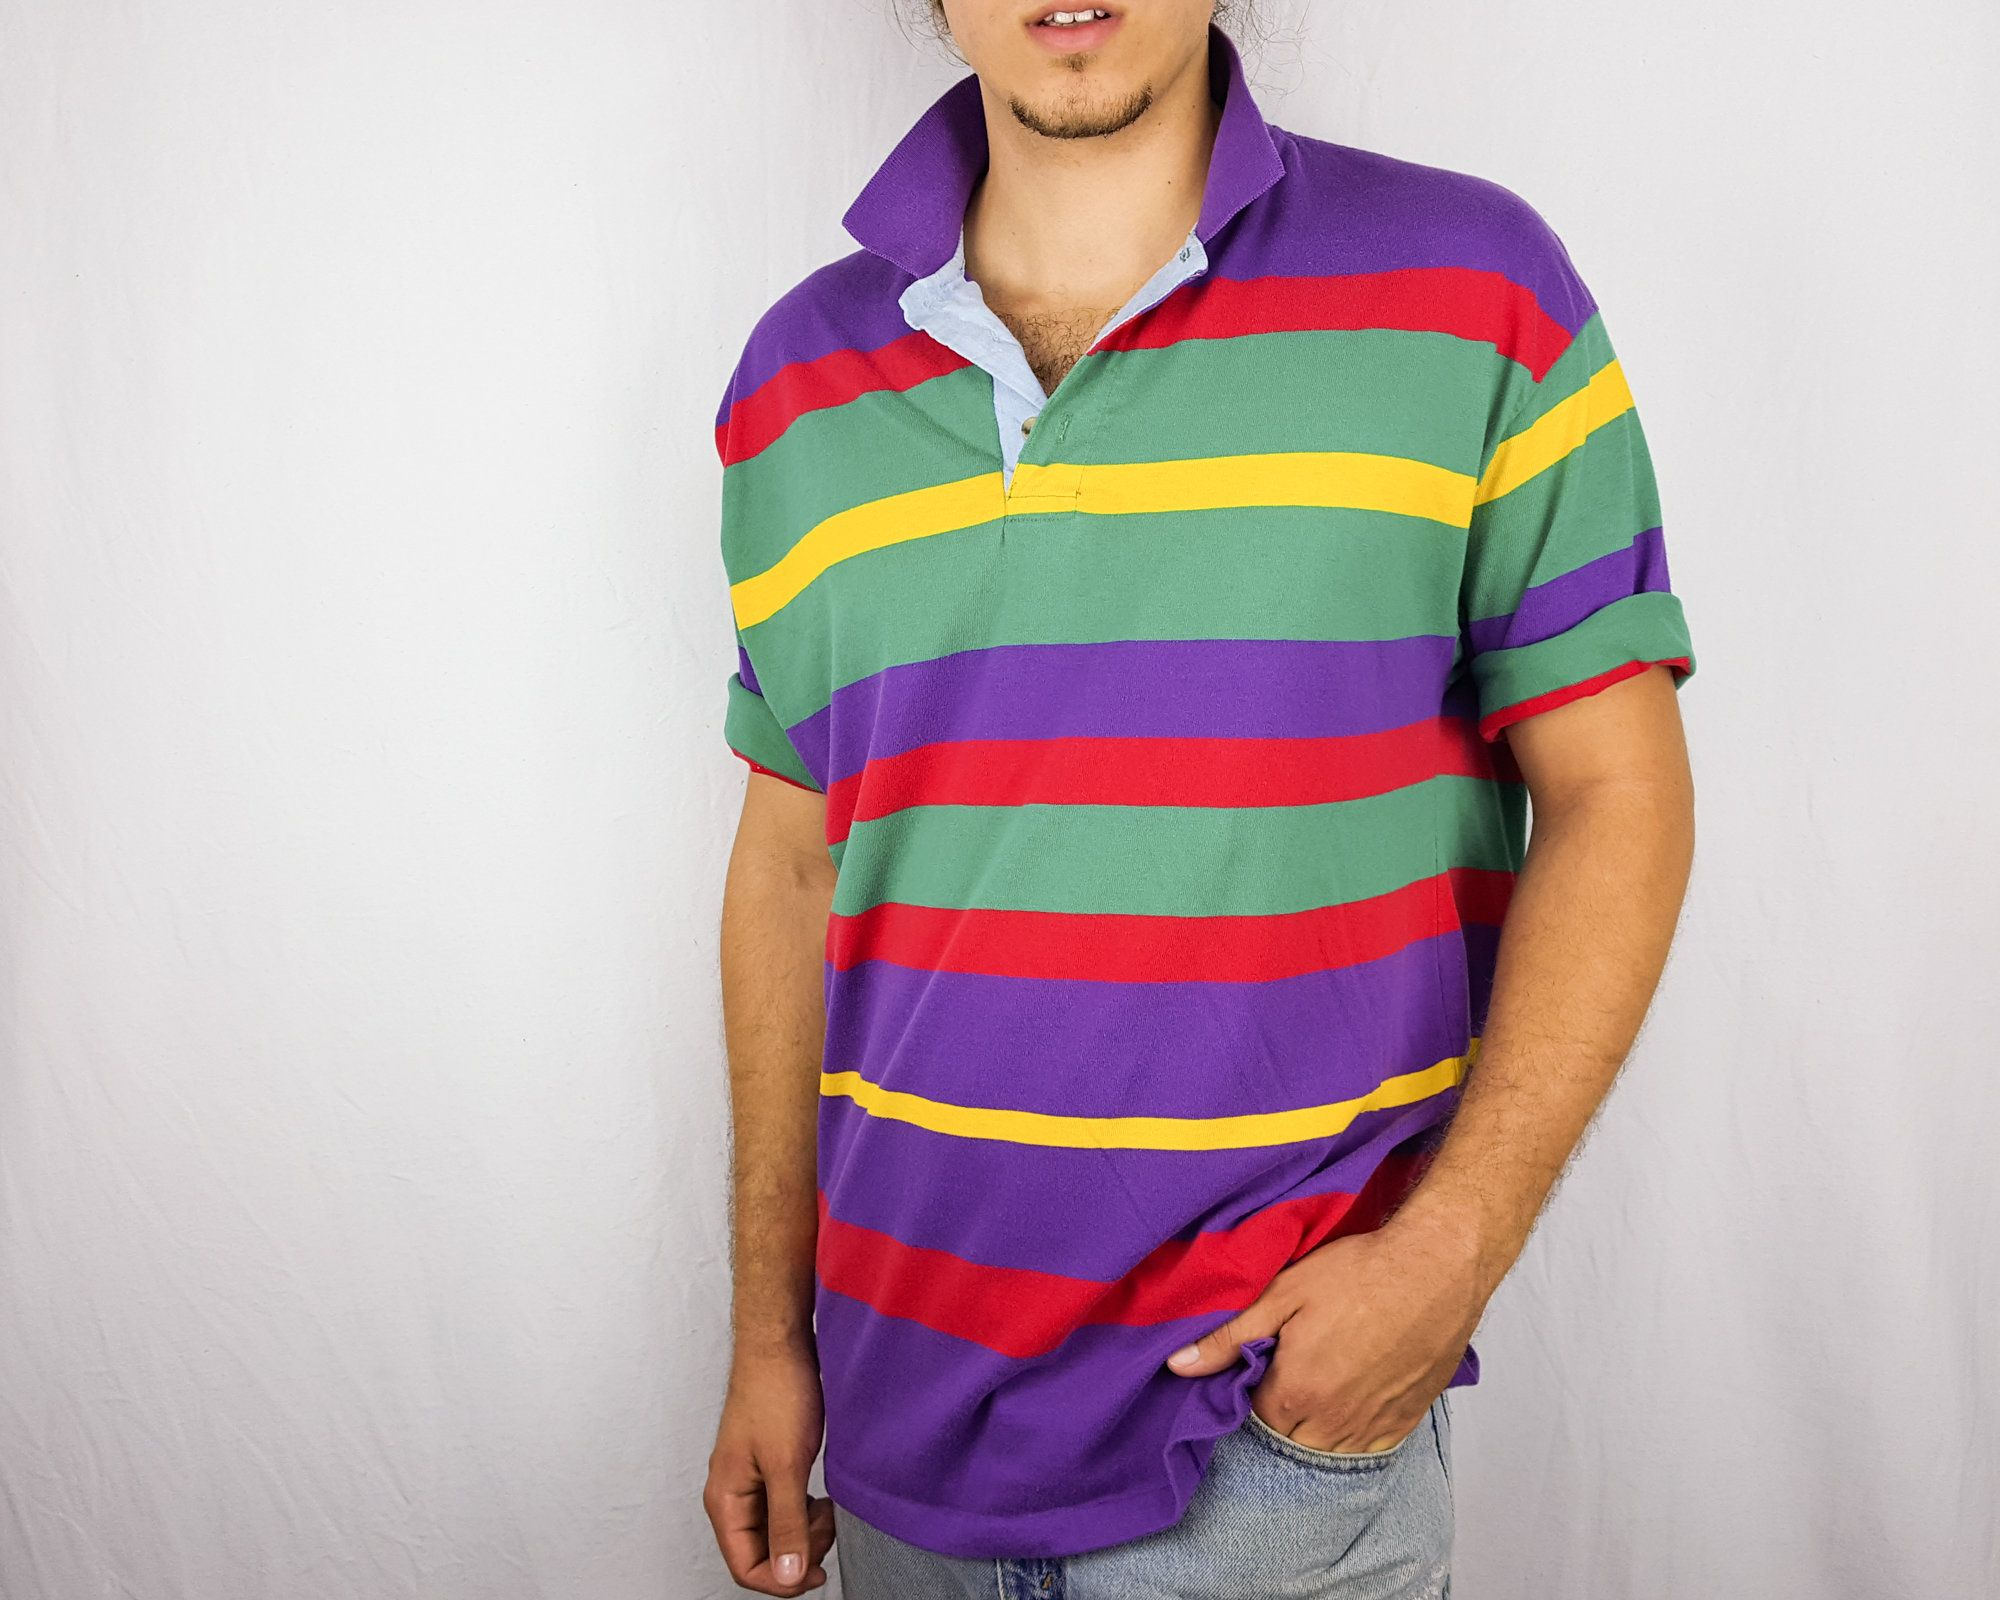 cf43314bacf Vintage 90s colorblock striped polo shirt with a chambray placket. Label is  Vessels Global Classics. #90s #etsy #vintage #vintageclothing #vintagestyle  # ...